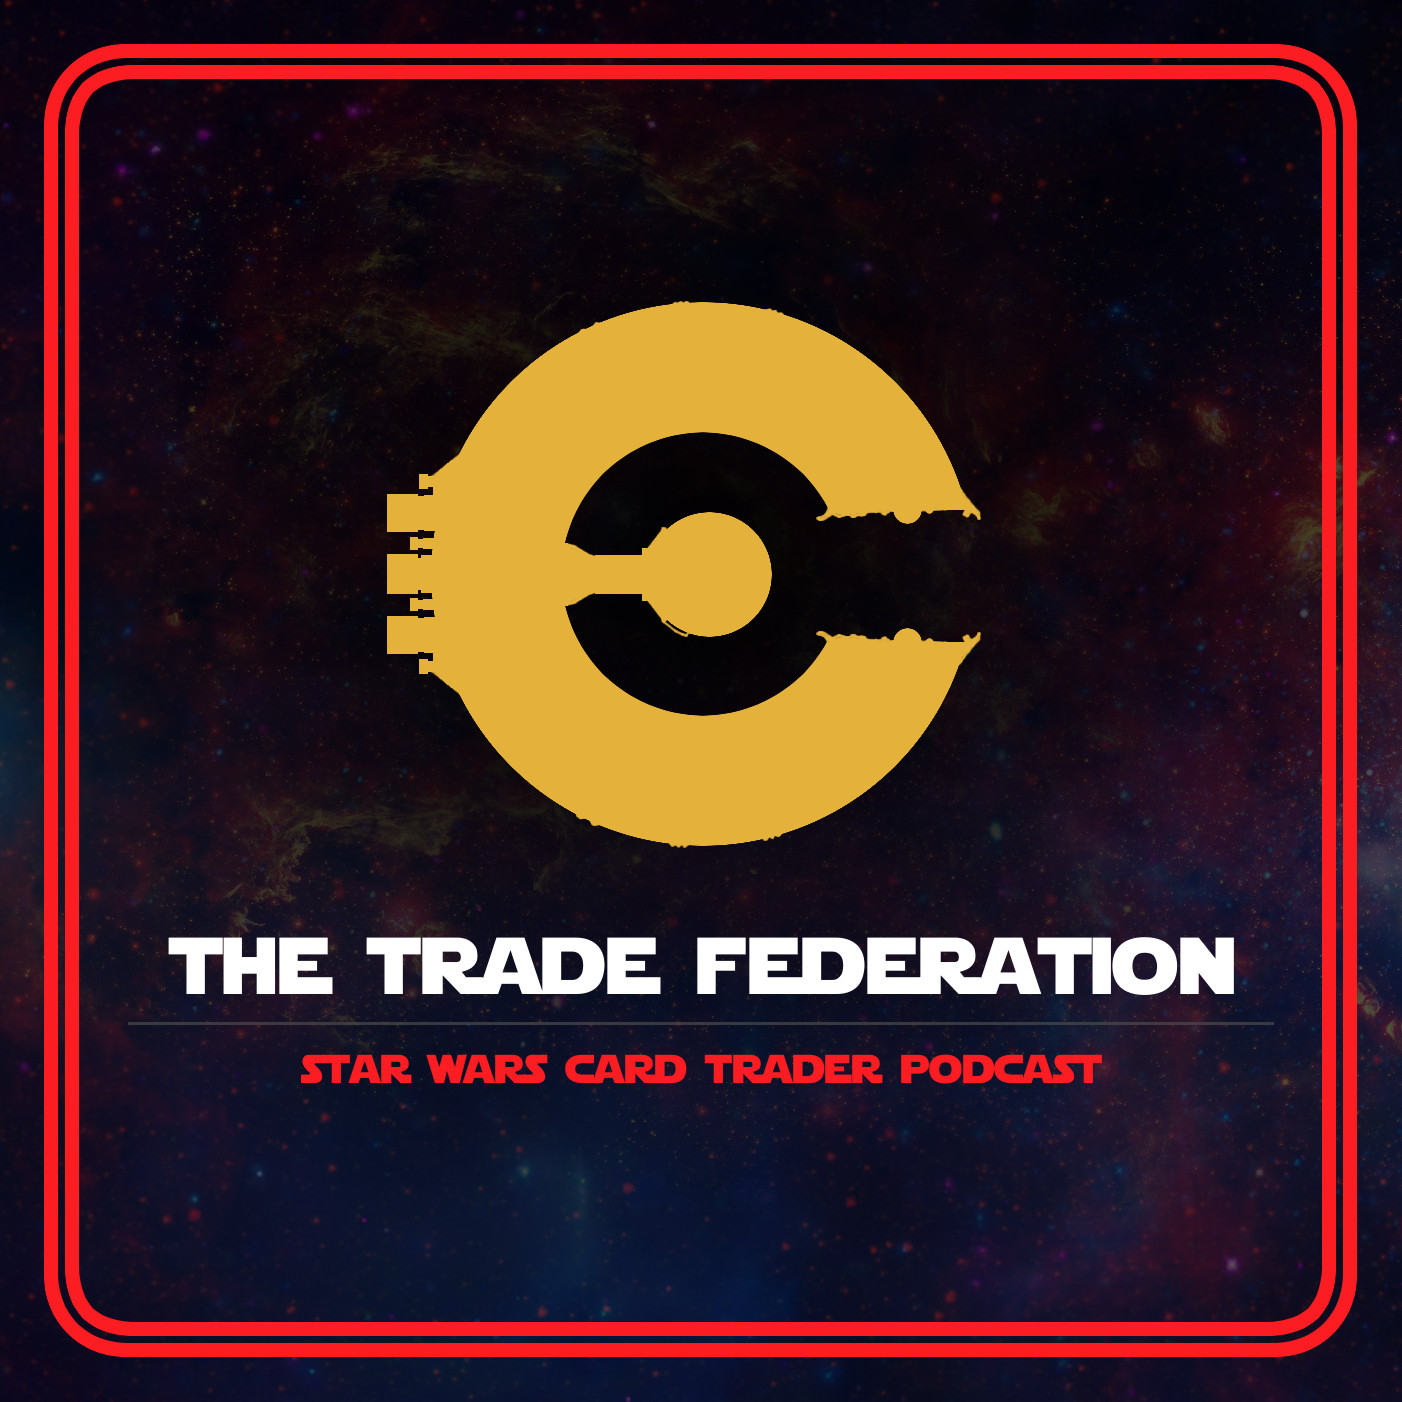 The Trade Federation podcast, Star Wars Card Trader